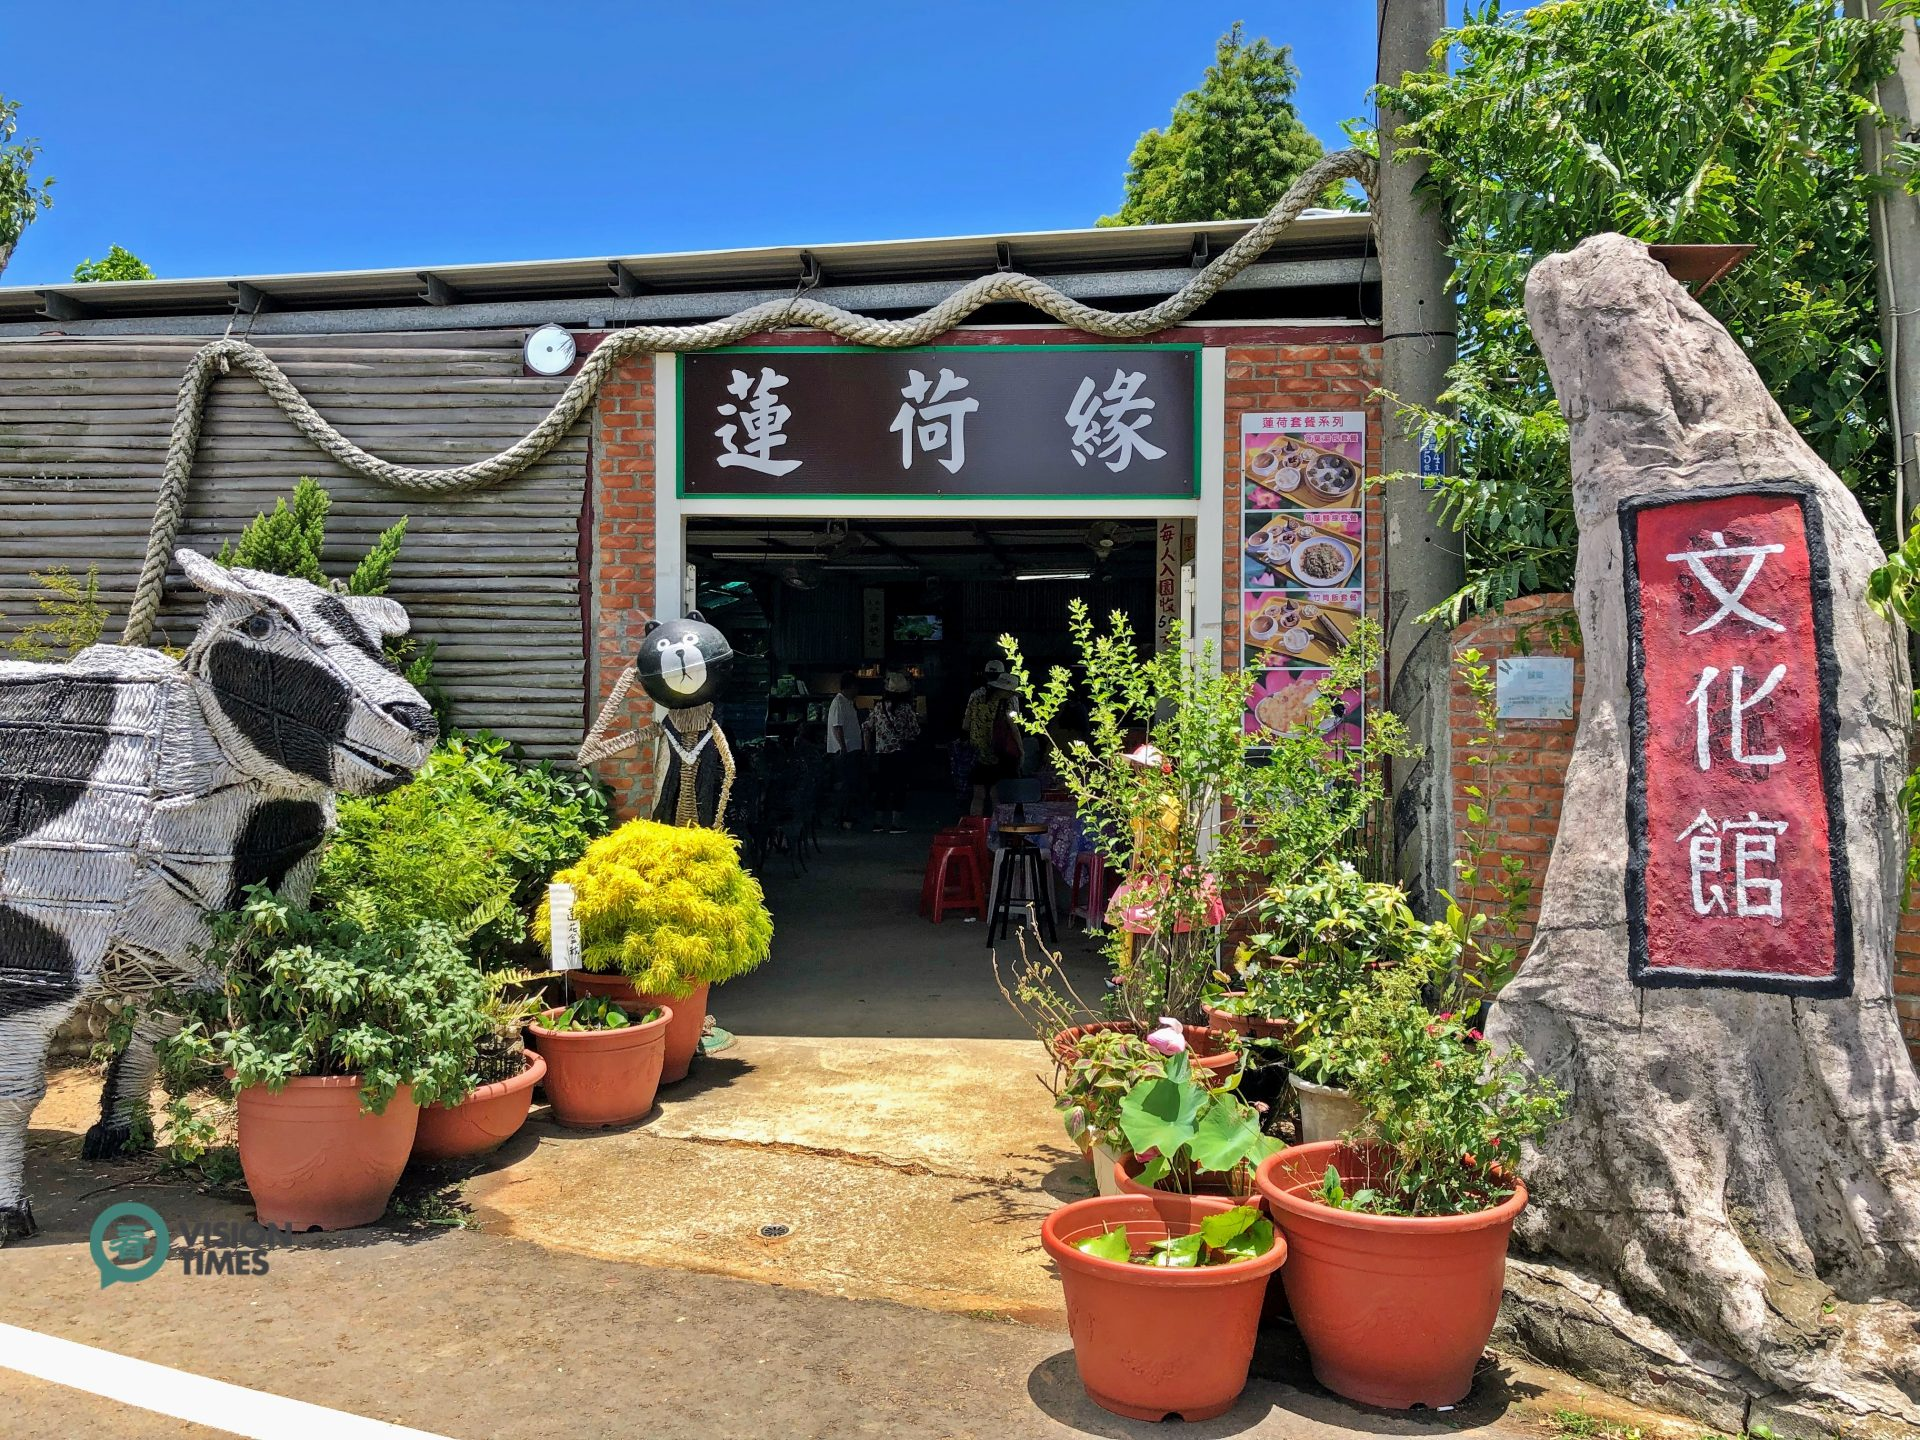 Lian He Garden Leisure Farm is one of about lotus leisure farms in Taoyuan City's Guanyin District. (Image: Billy Shyu / Vision Times)